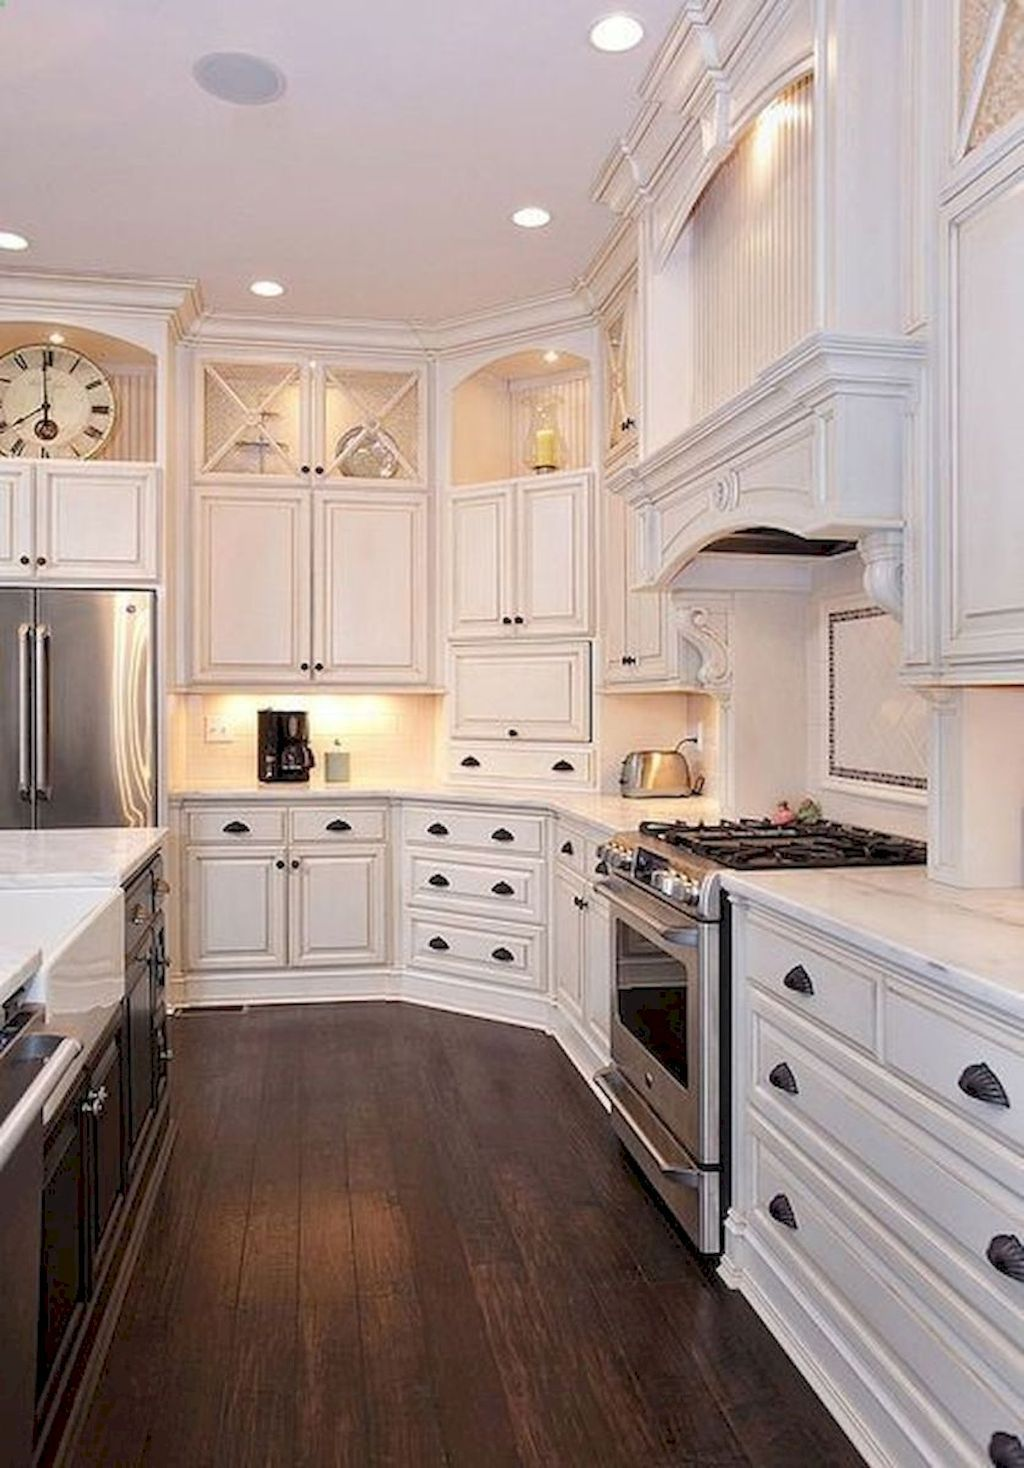 White Kitchen Ideas From The Devices To The Cabinets We Have Actually Damaged Down 28 Diff White Kitchen Design New Kitchen Cabinets Gorgeous White Kitchen